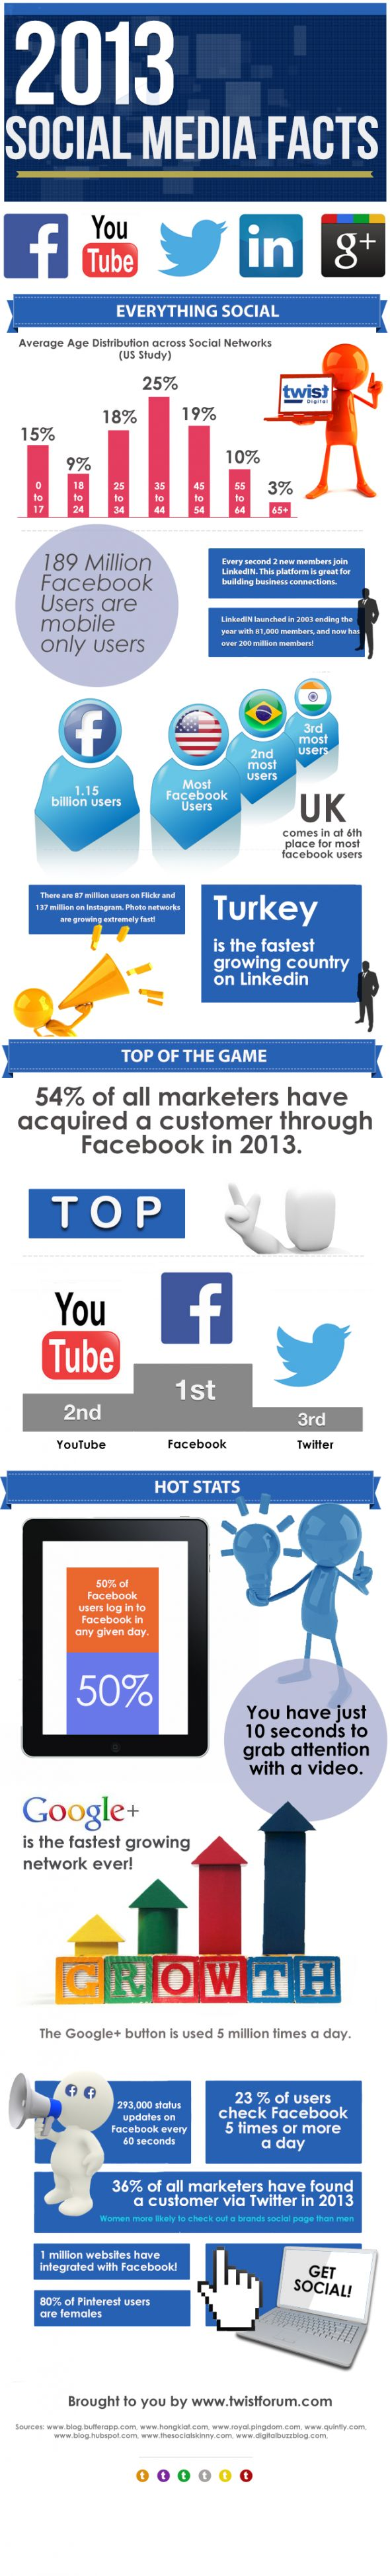 Top social media networks to help your business [Infographic] #socialmedia #marketing #business